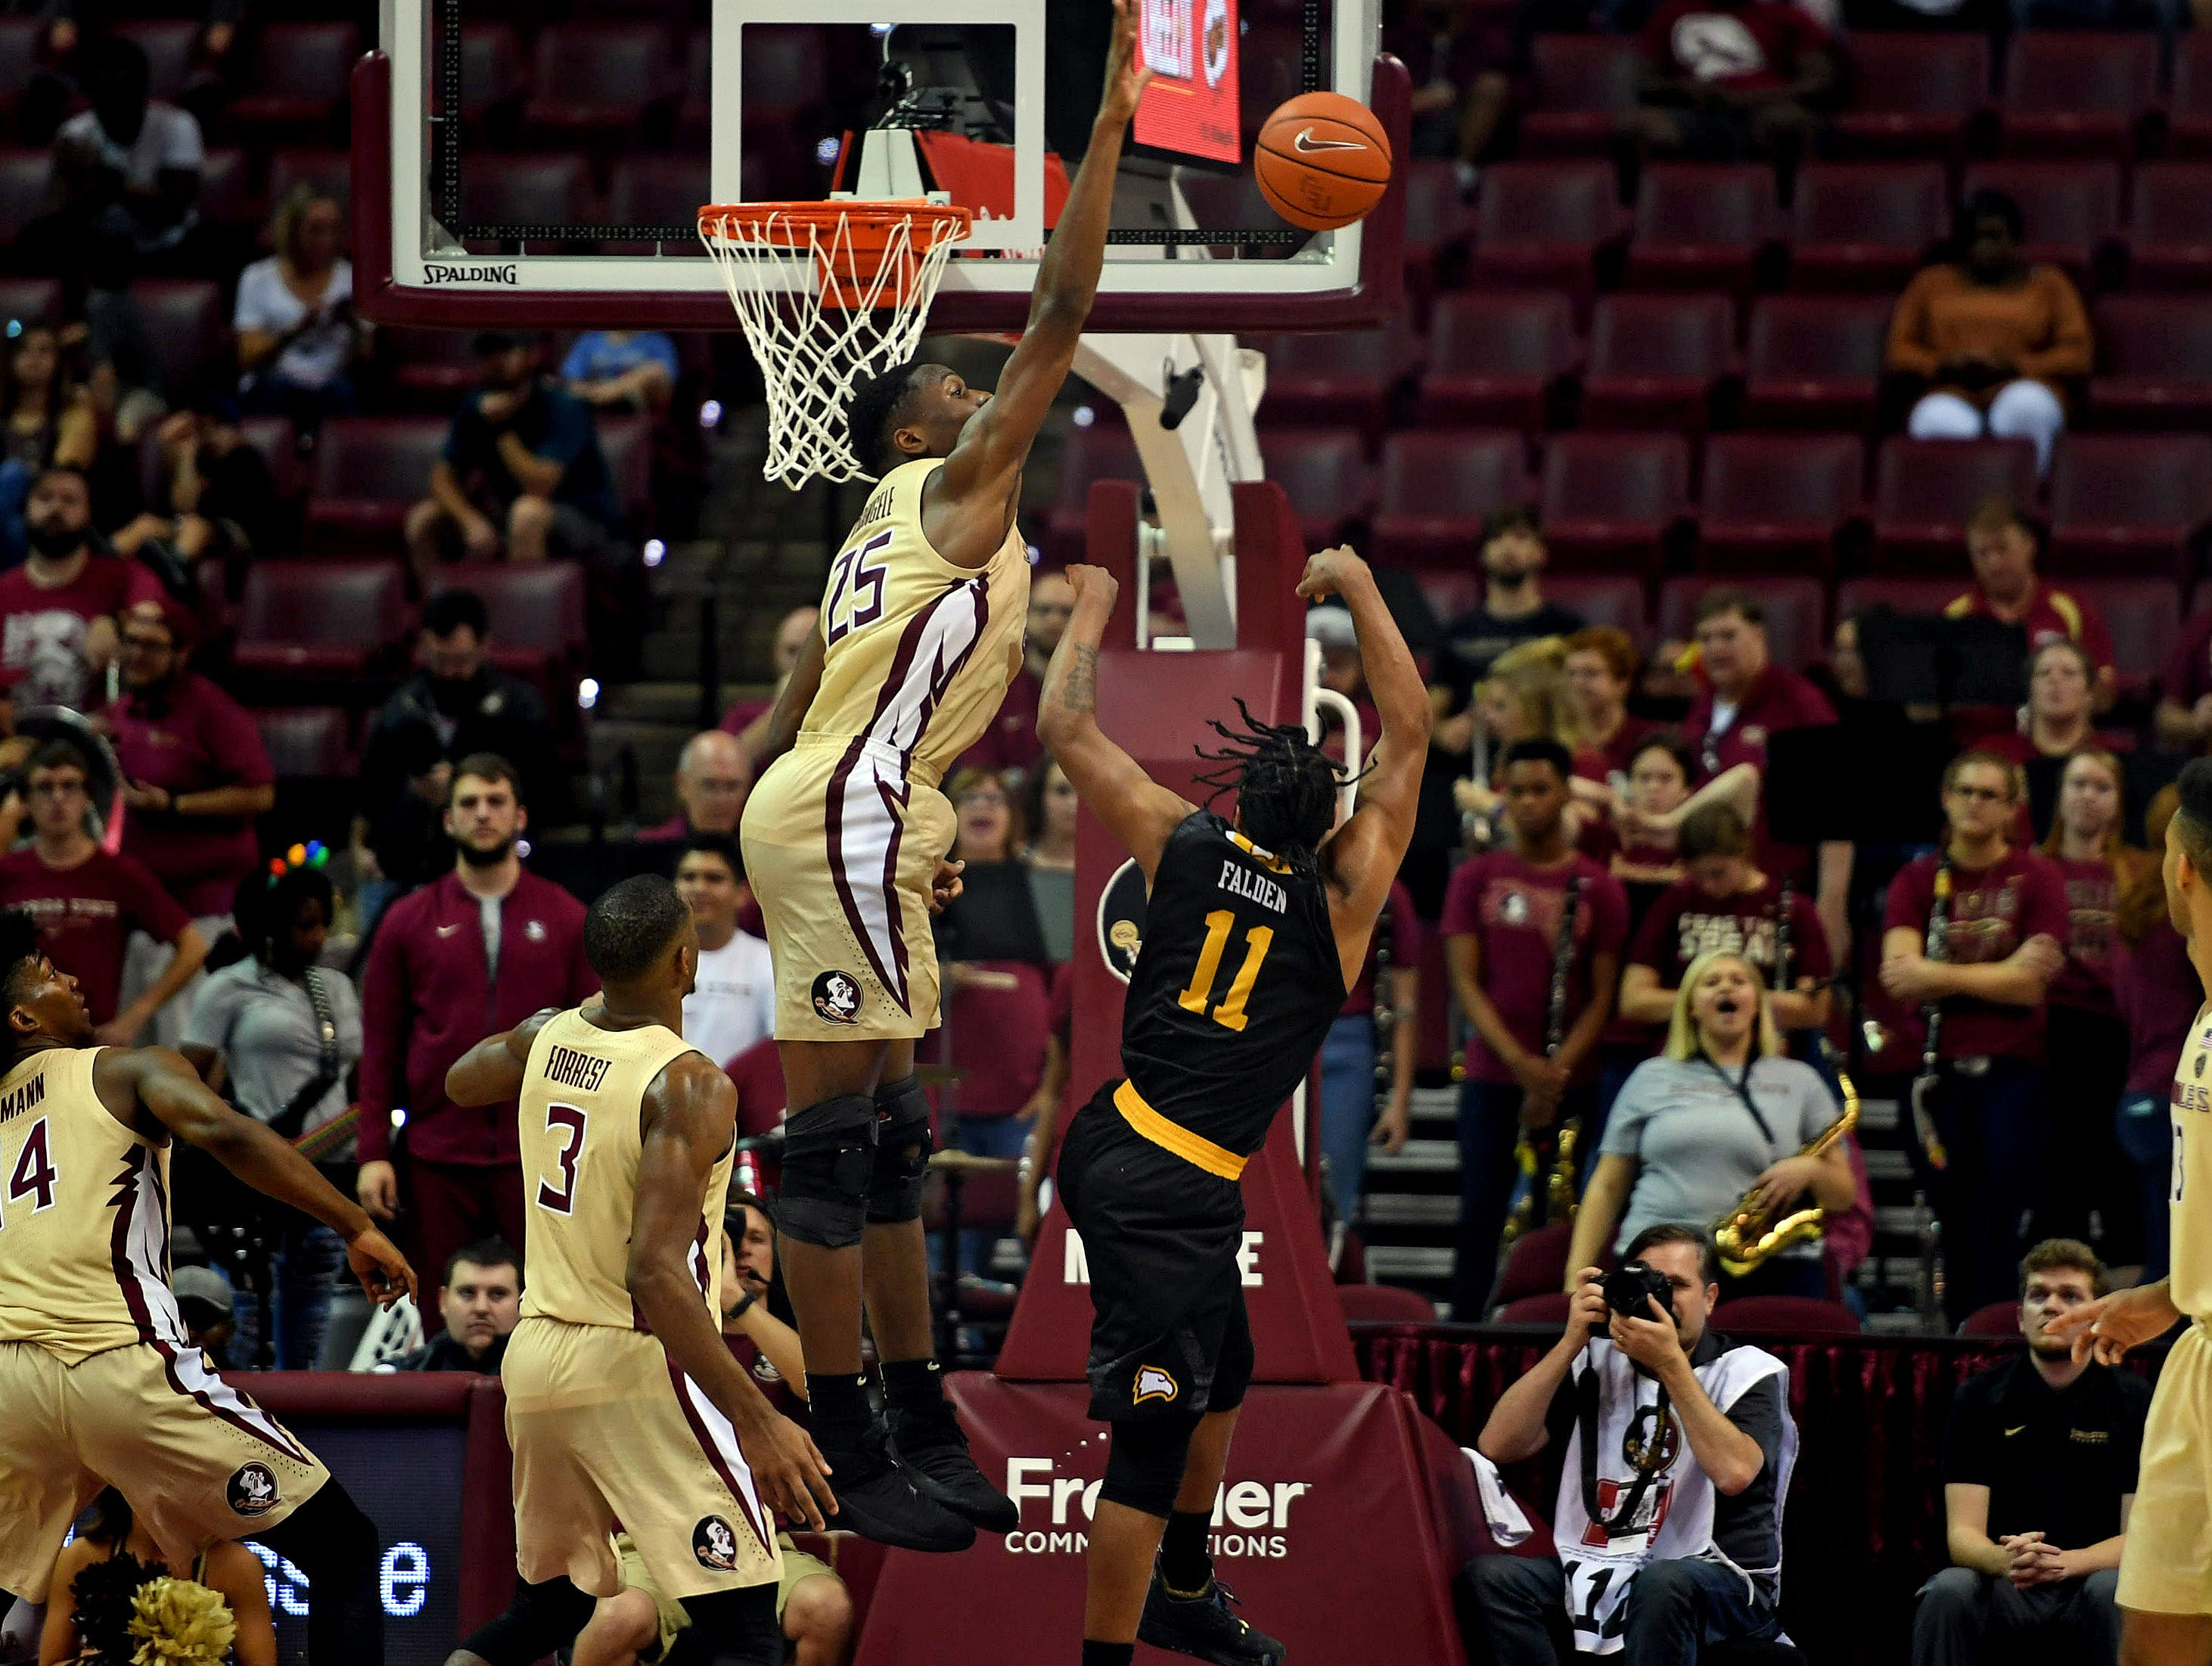 Jan 1, 2019; Tallahassee, FL, USA; Florida State Seminoles forward Mfiondu Kabengele (25) blocks a shot by Winthrop Eagles guard Charles Falden (11) during the game at Donald L. Tucker Center. Mandatory Credit: Melina Myers-USA TODAY Sports